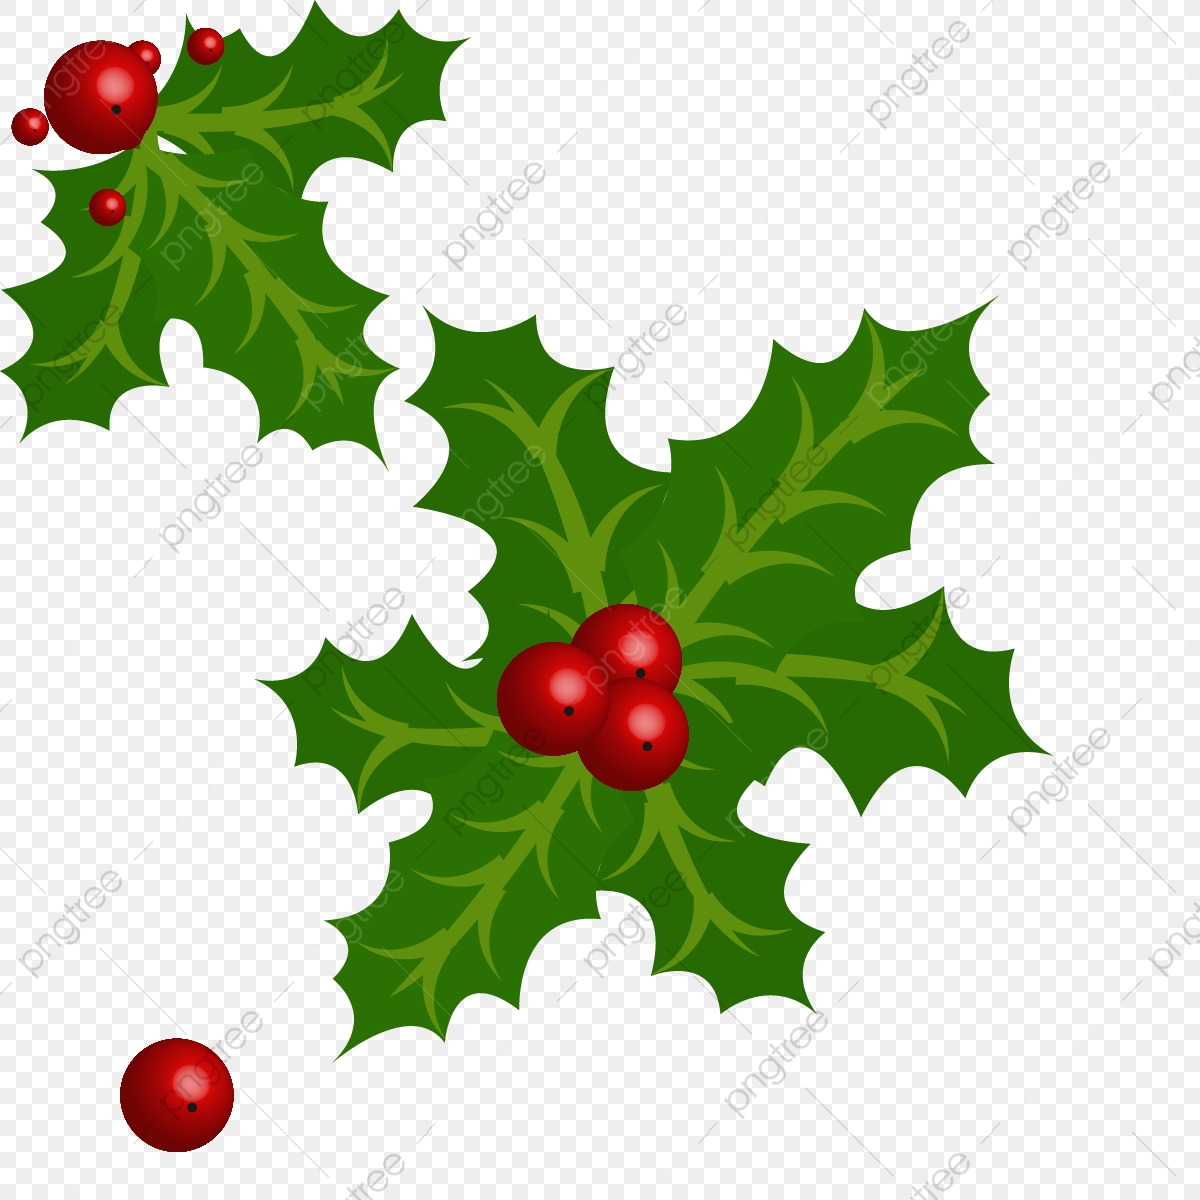 Christmas Holly Leaves Design Celebration Plant Pine December Png And Vector With Transparent Background For Free Download